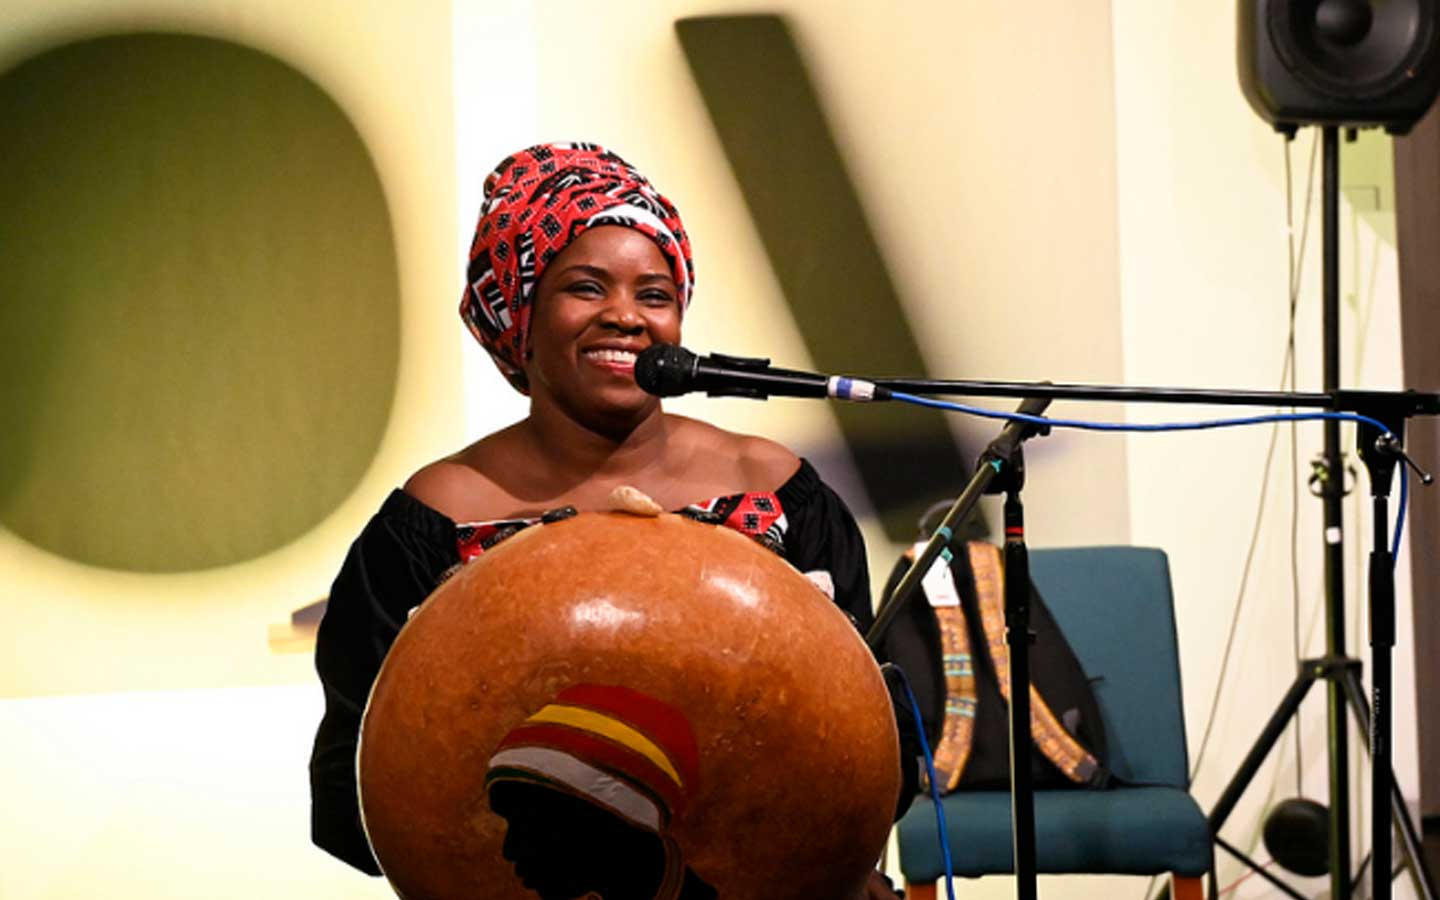 Mbira music starts here... Millicent Chapanda Week continues with Mbira for beginners! An insight...